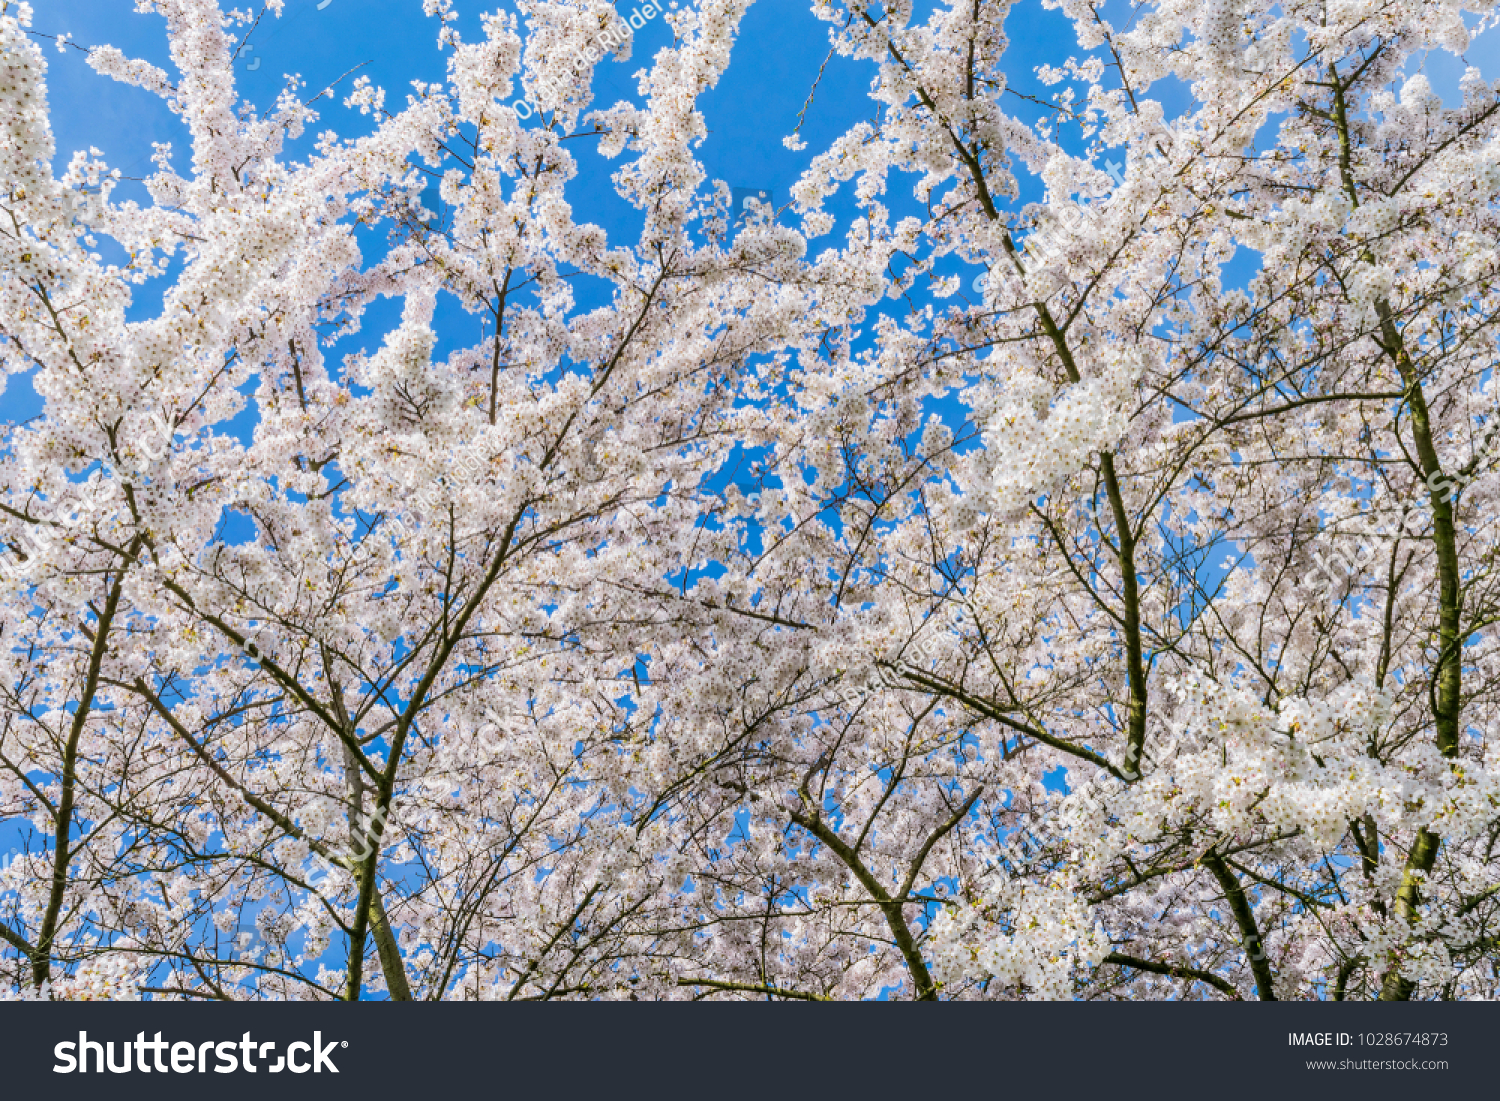 Cherry Blossom In The Spring White Flowers Of Fruit Trees Against A